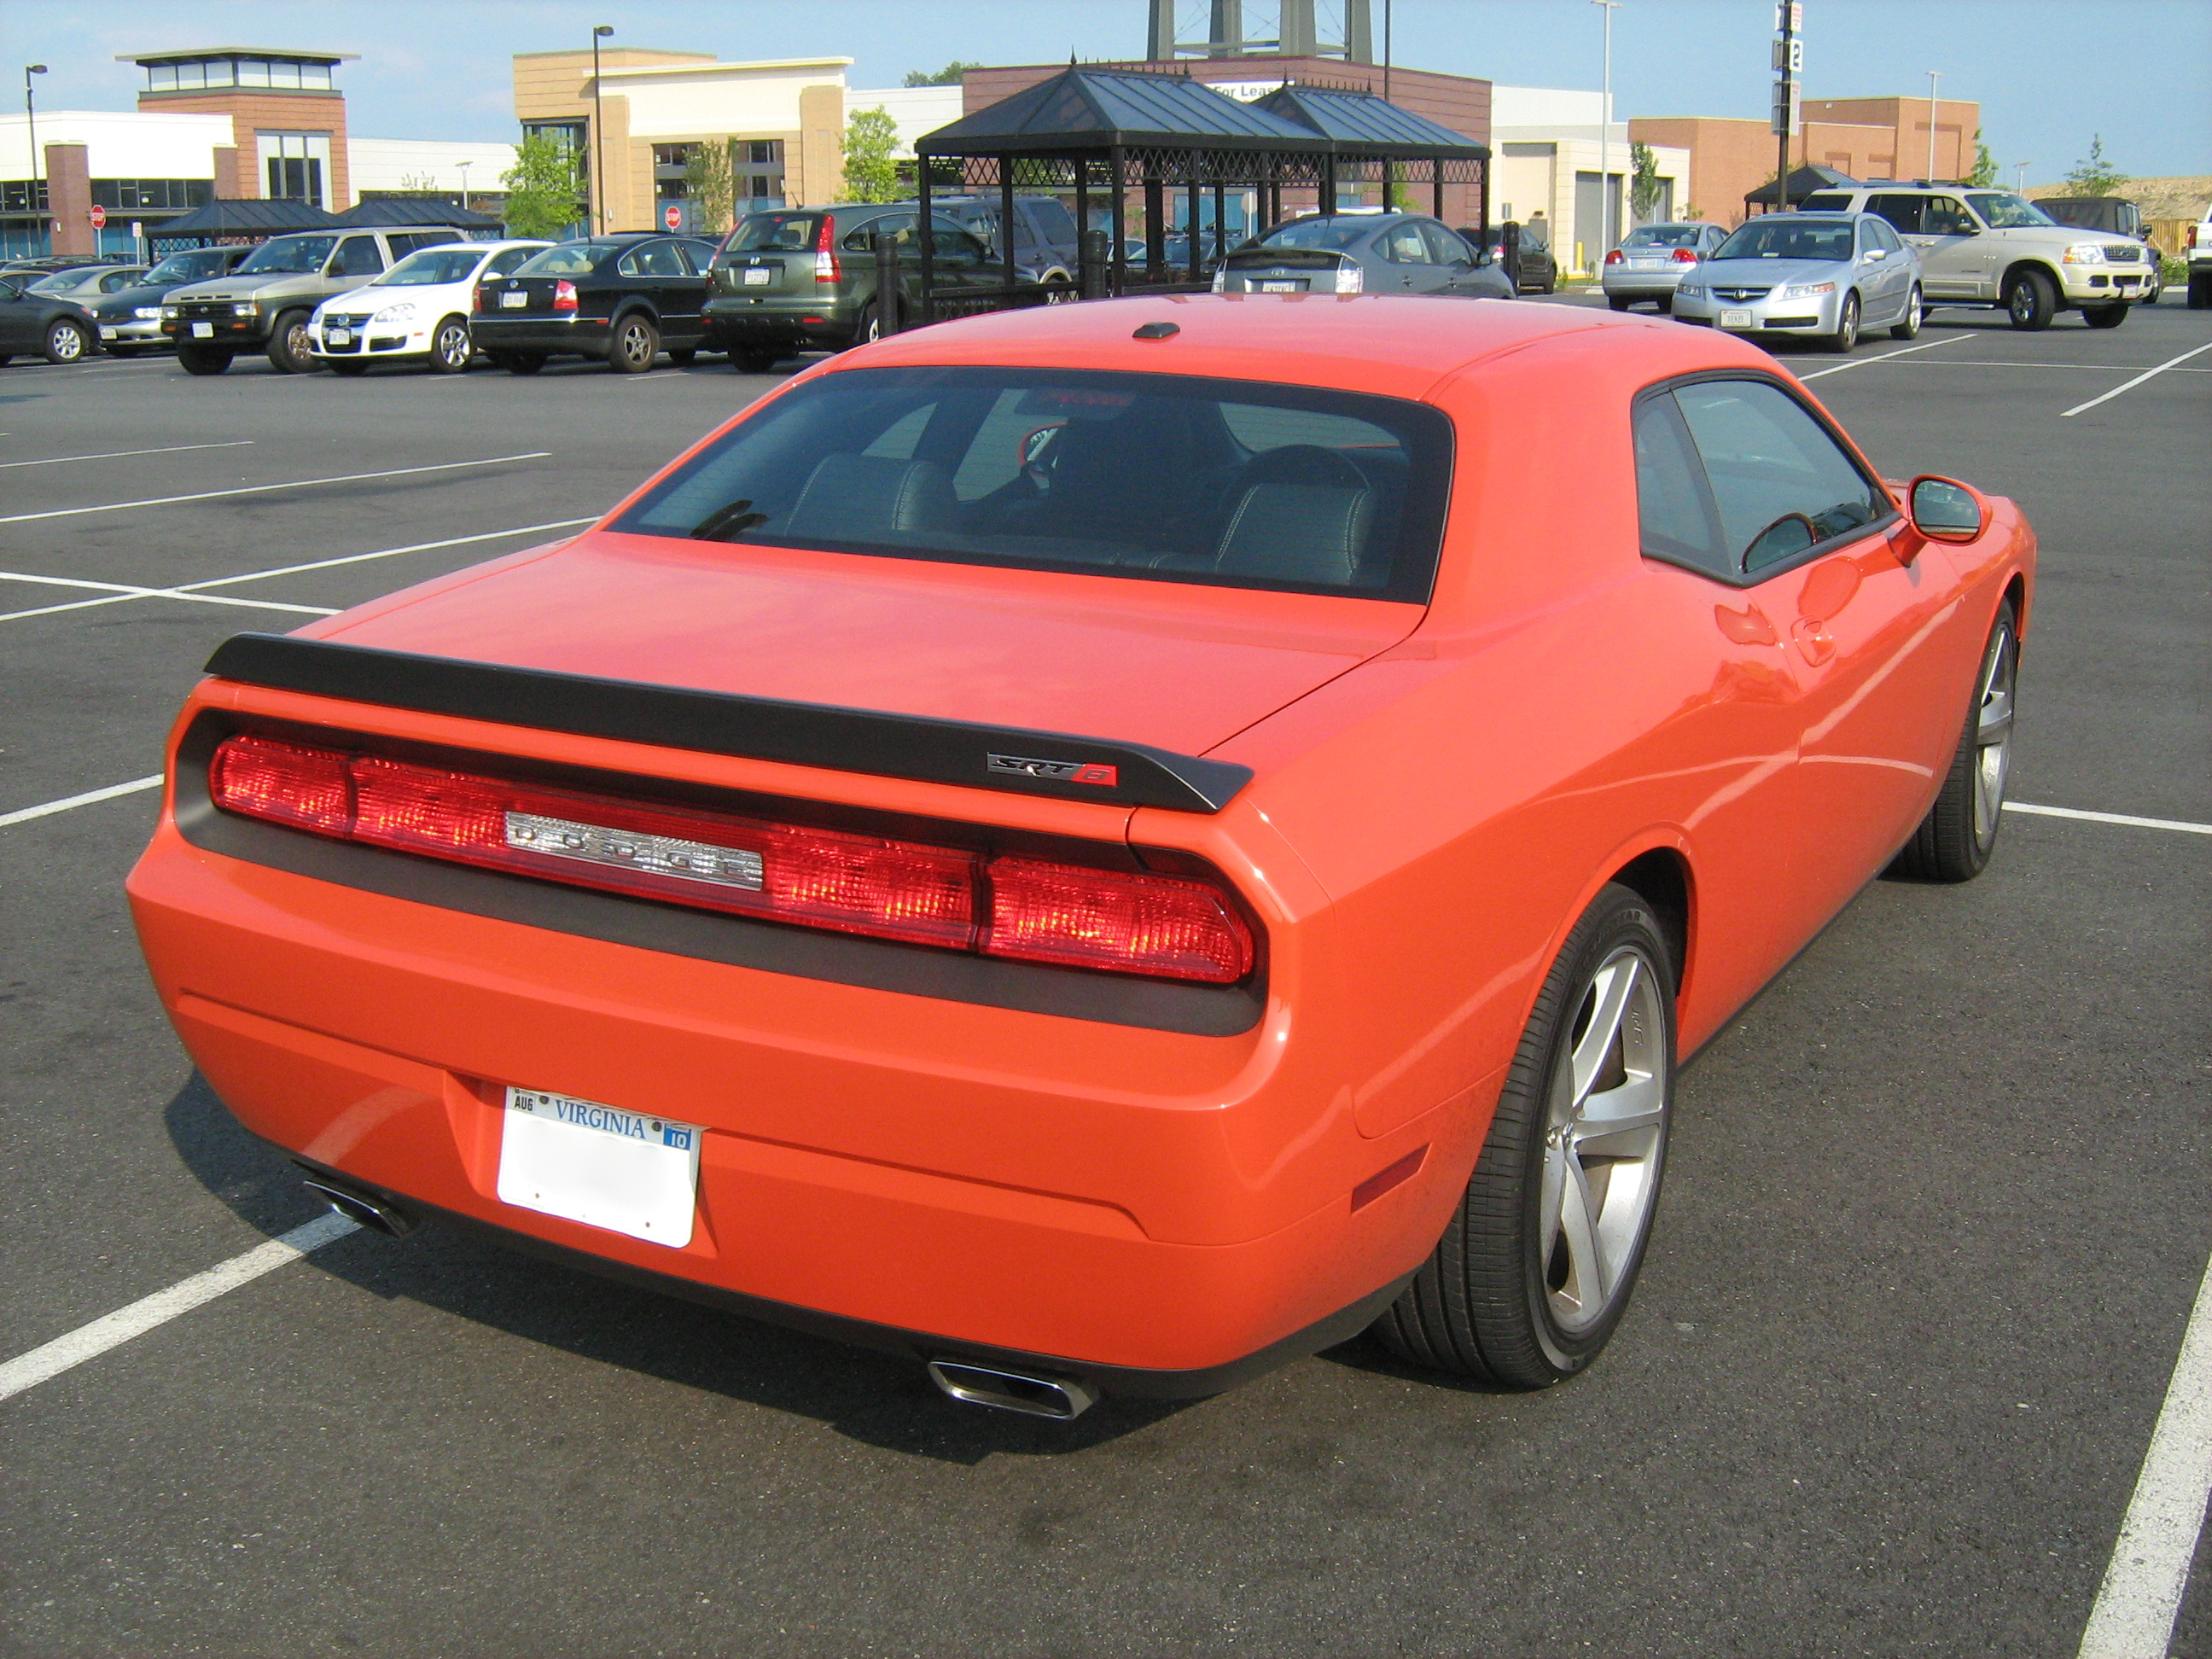 File:Dodge Challenger SRT8 va orange-r.jpg - Wikimedia Commons